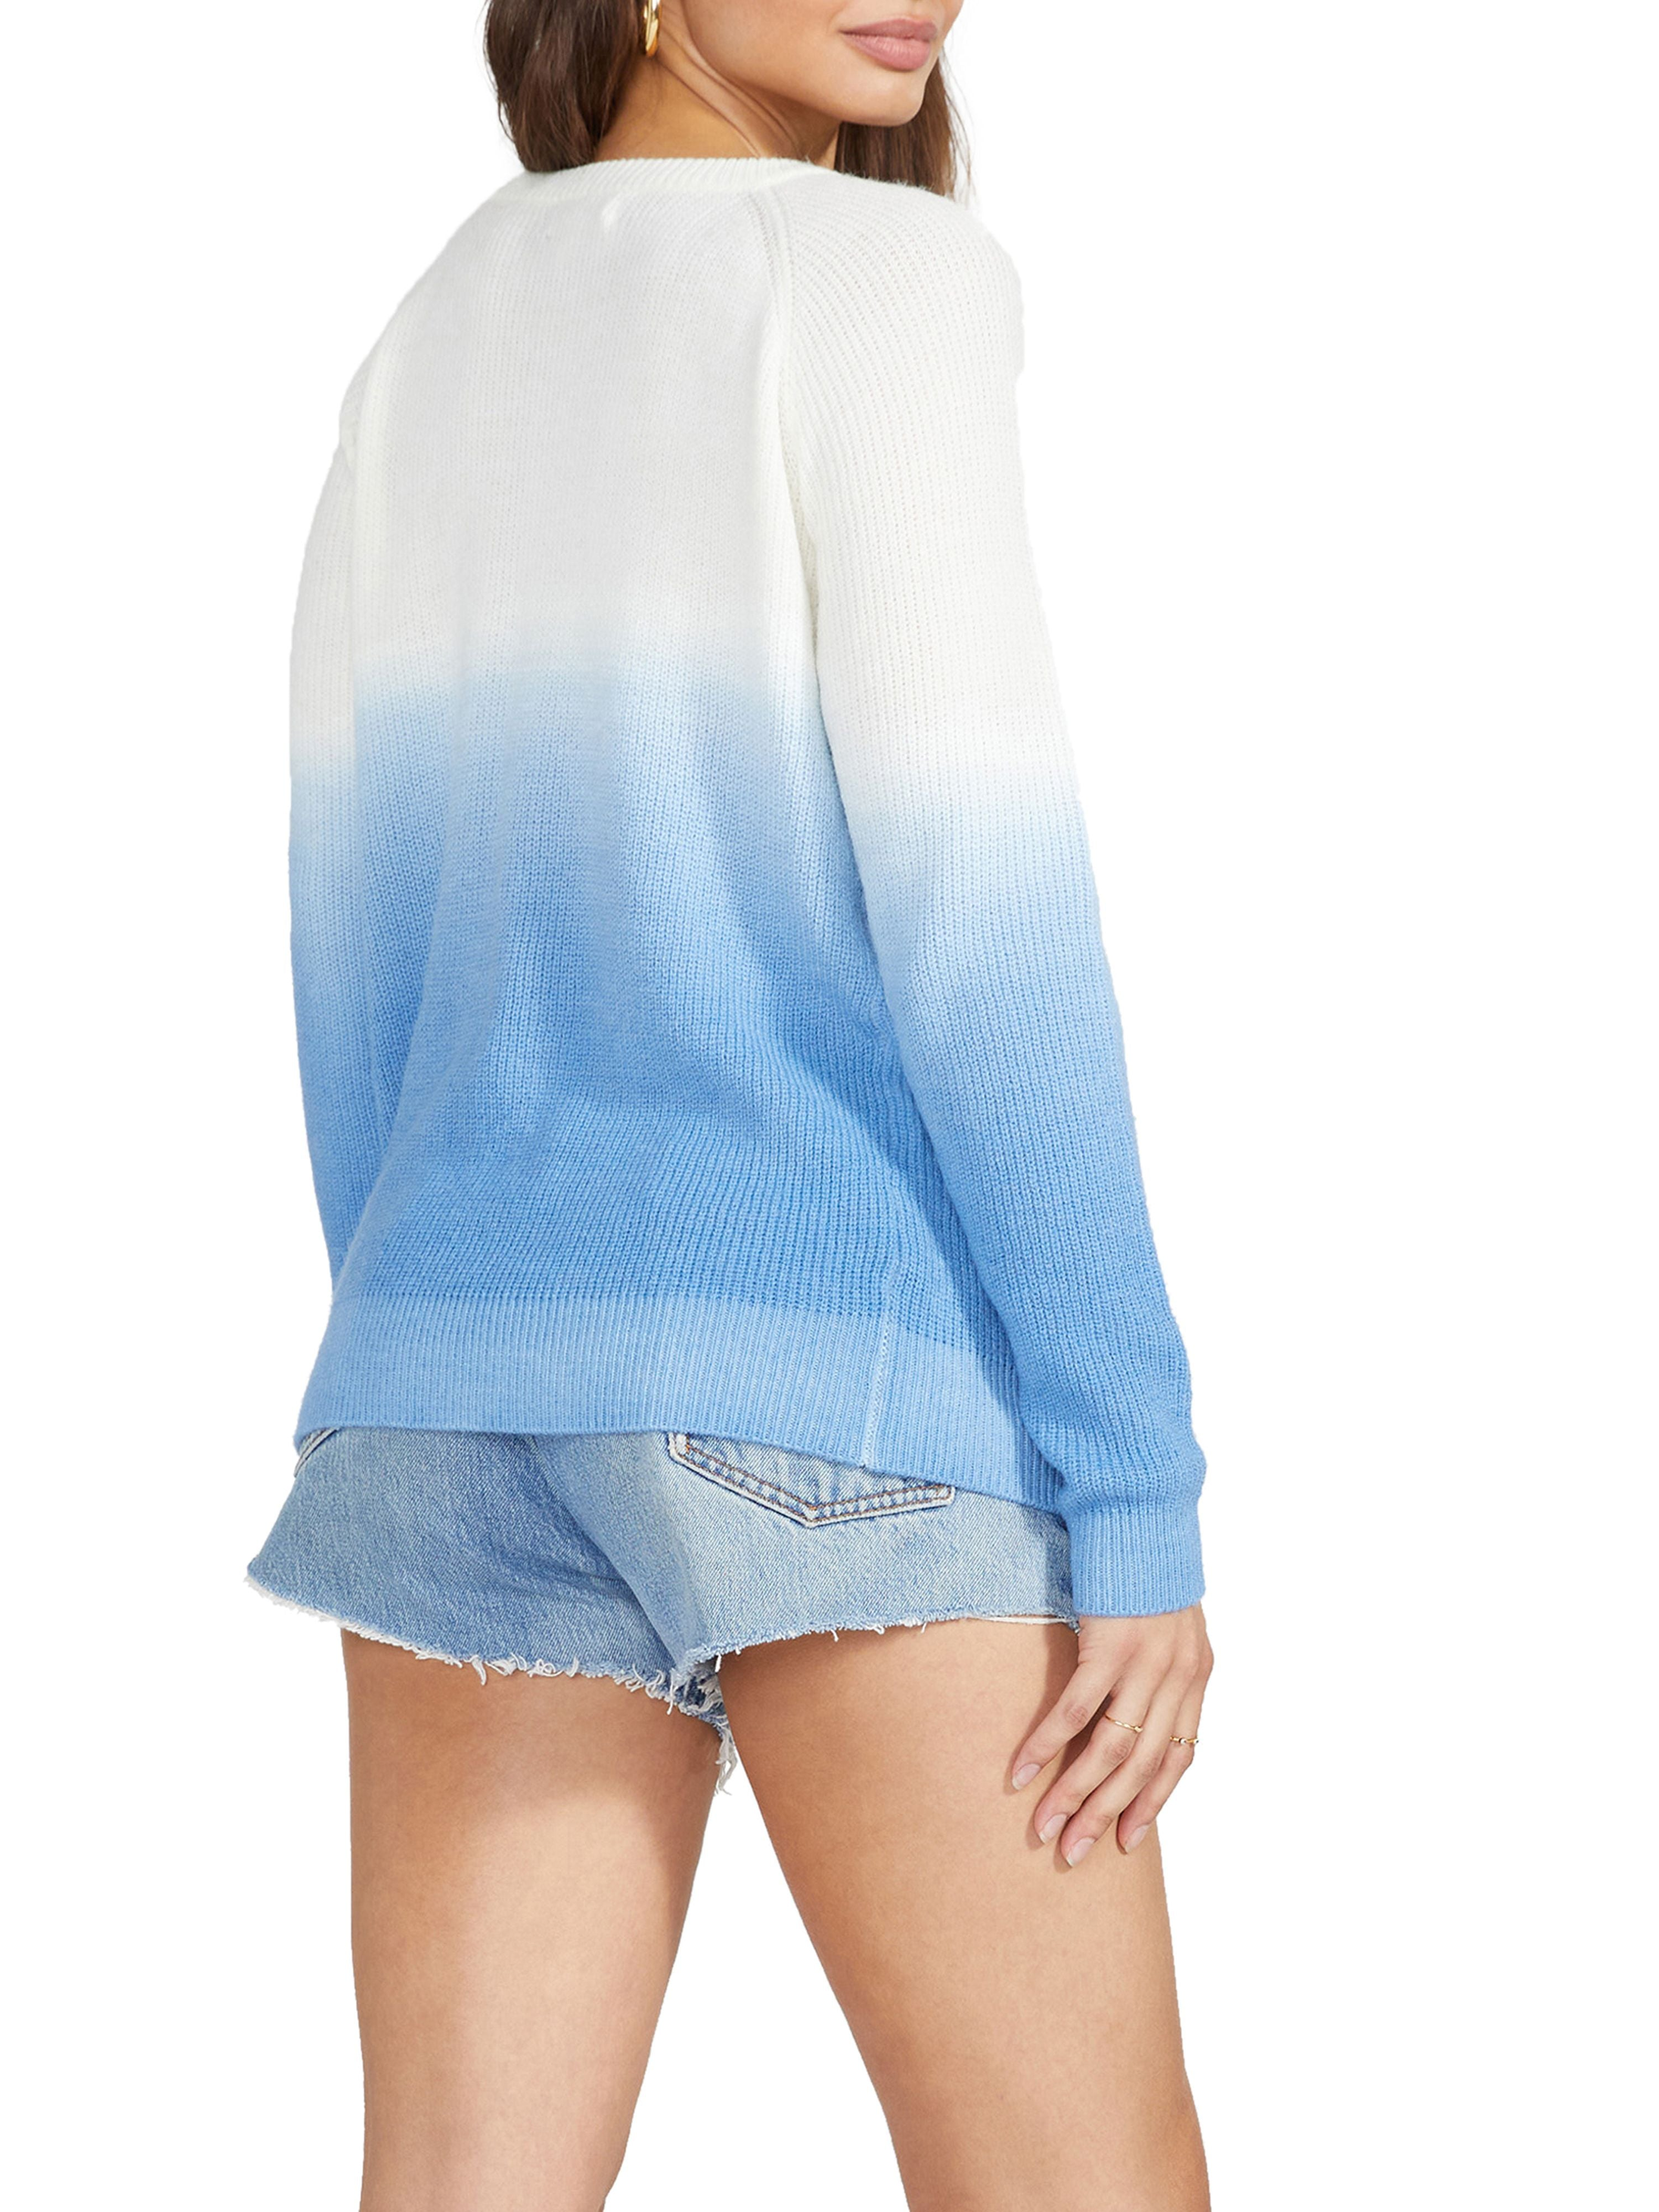 Take a Dip Sweater